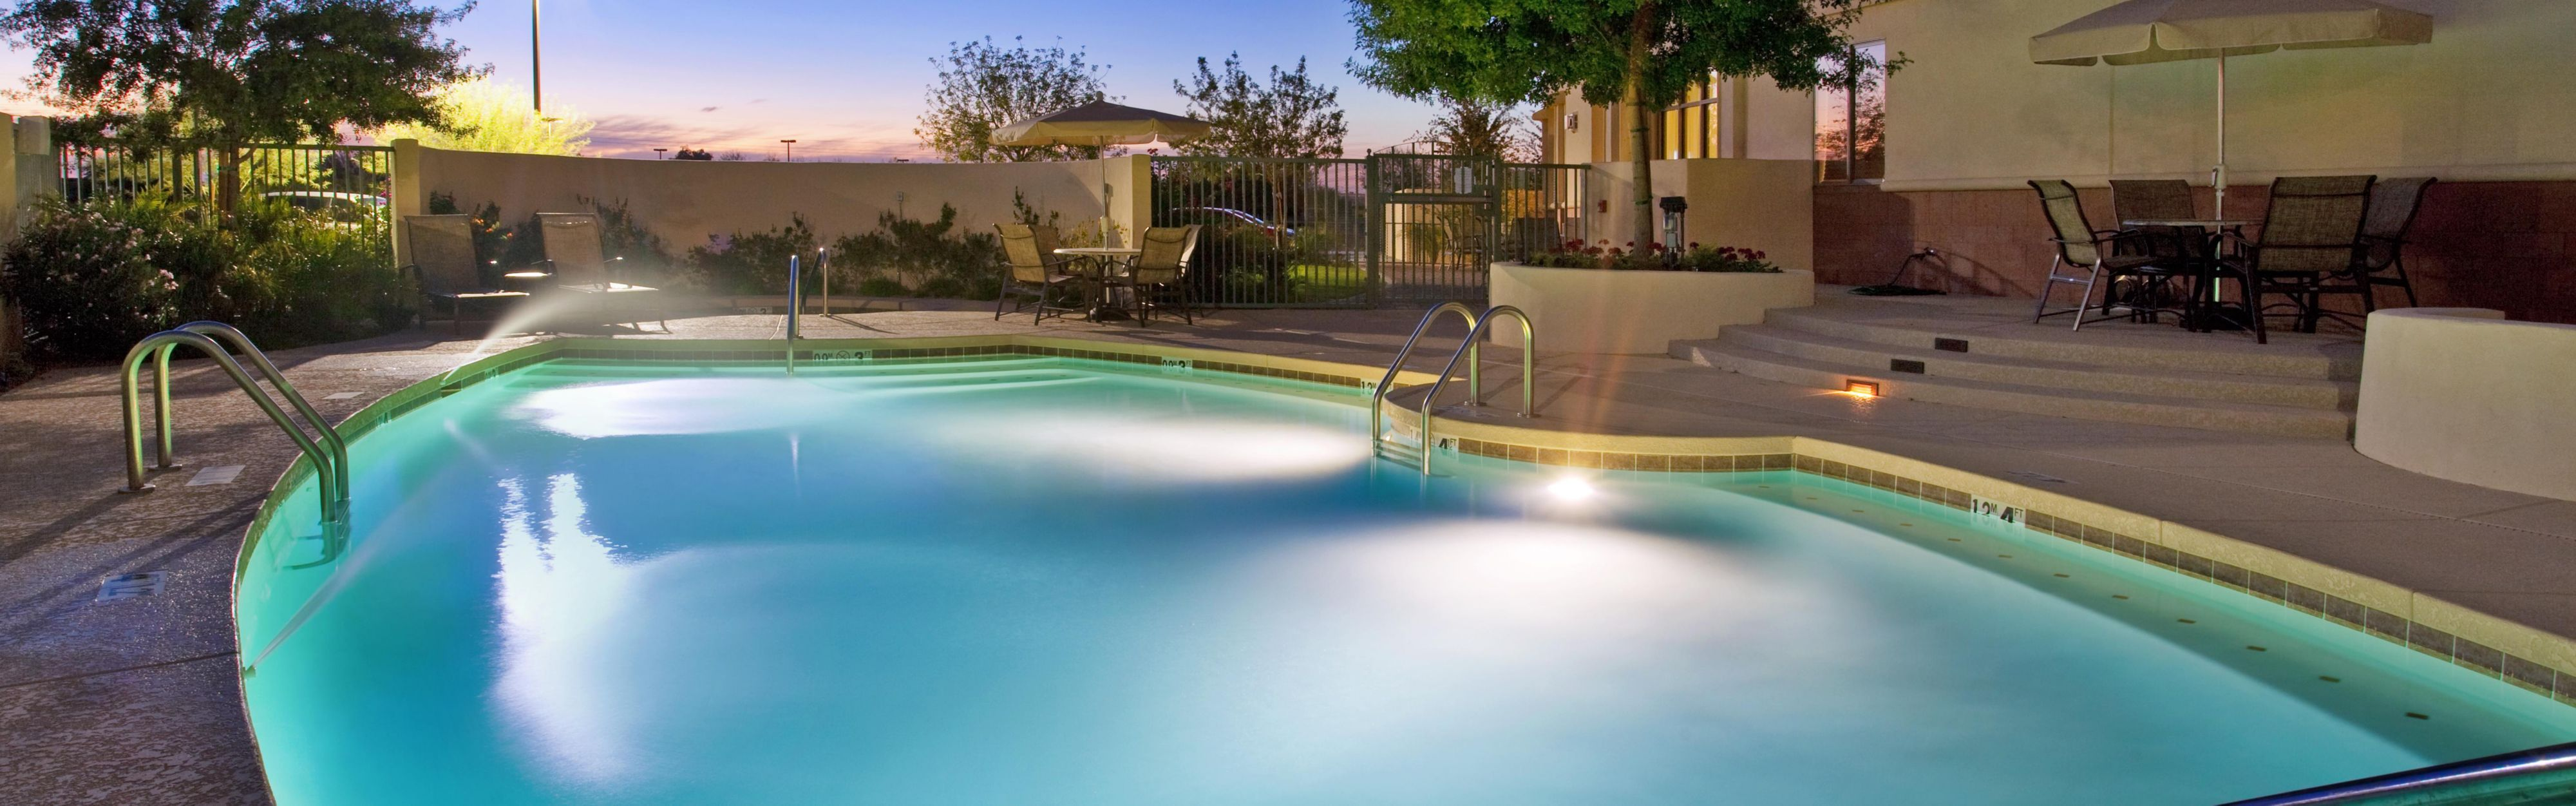 Holiday Inn & Suites Phoenix Airport image 2